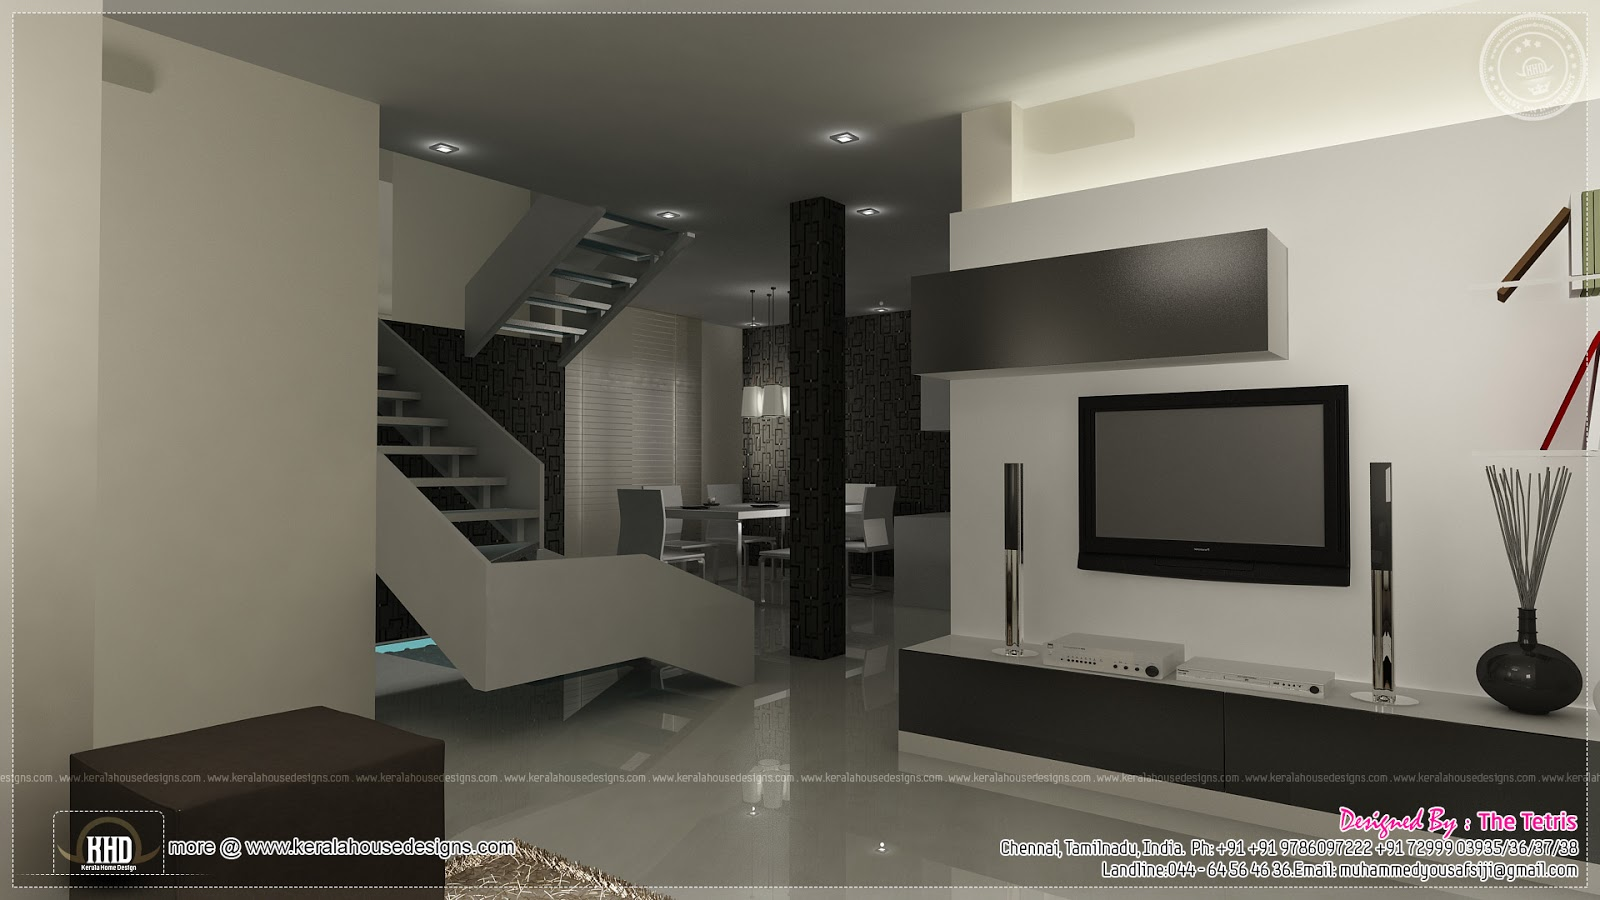 Interior design renderings by tetris architects chennai house design plans - Indian house interior design pictures ...